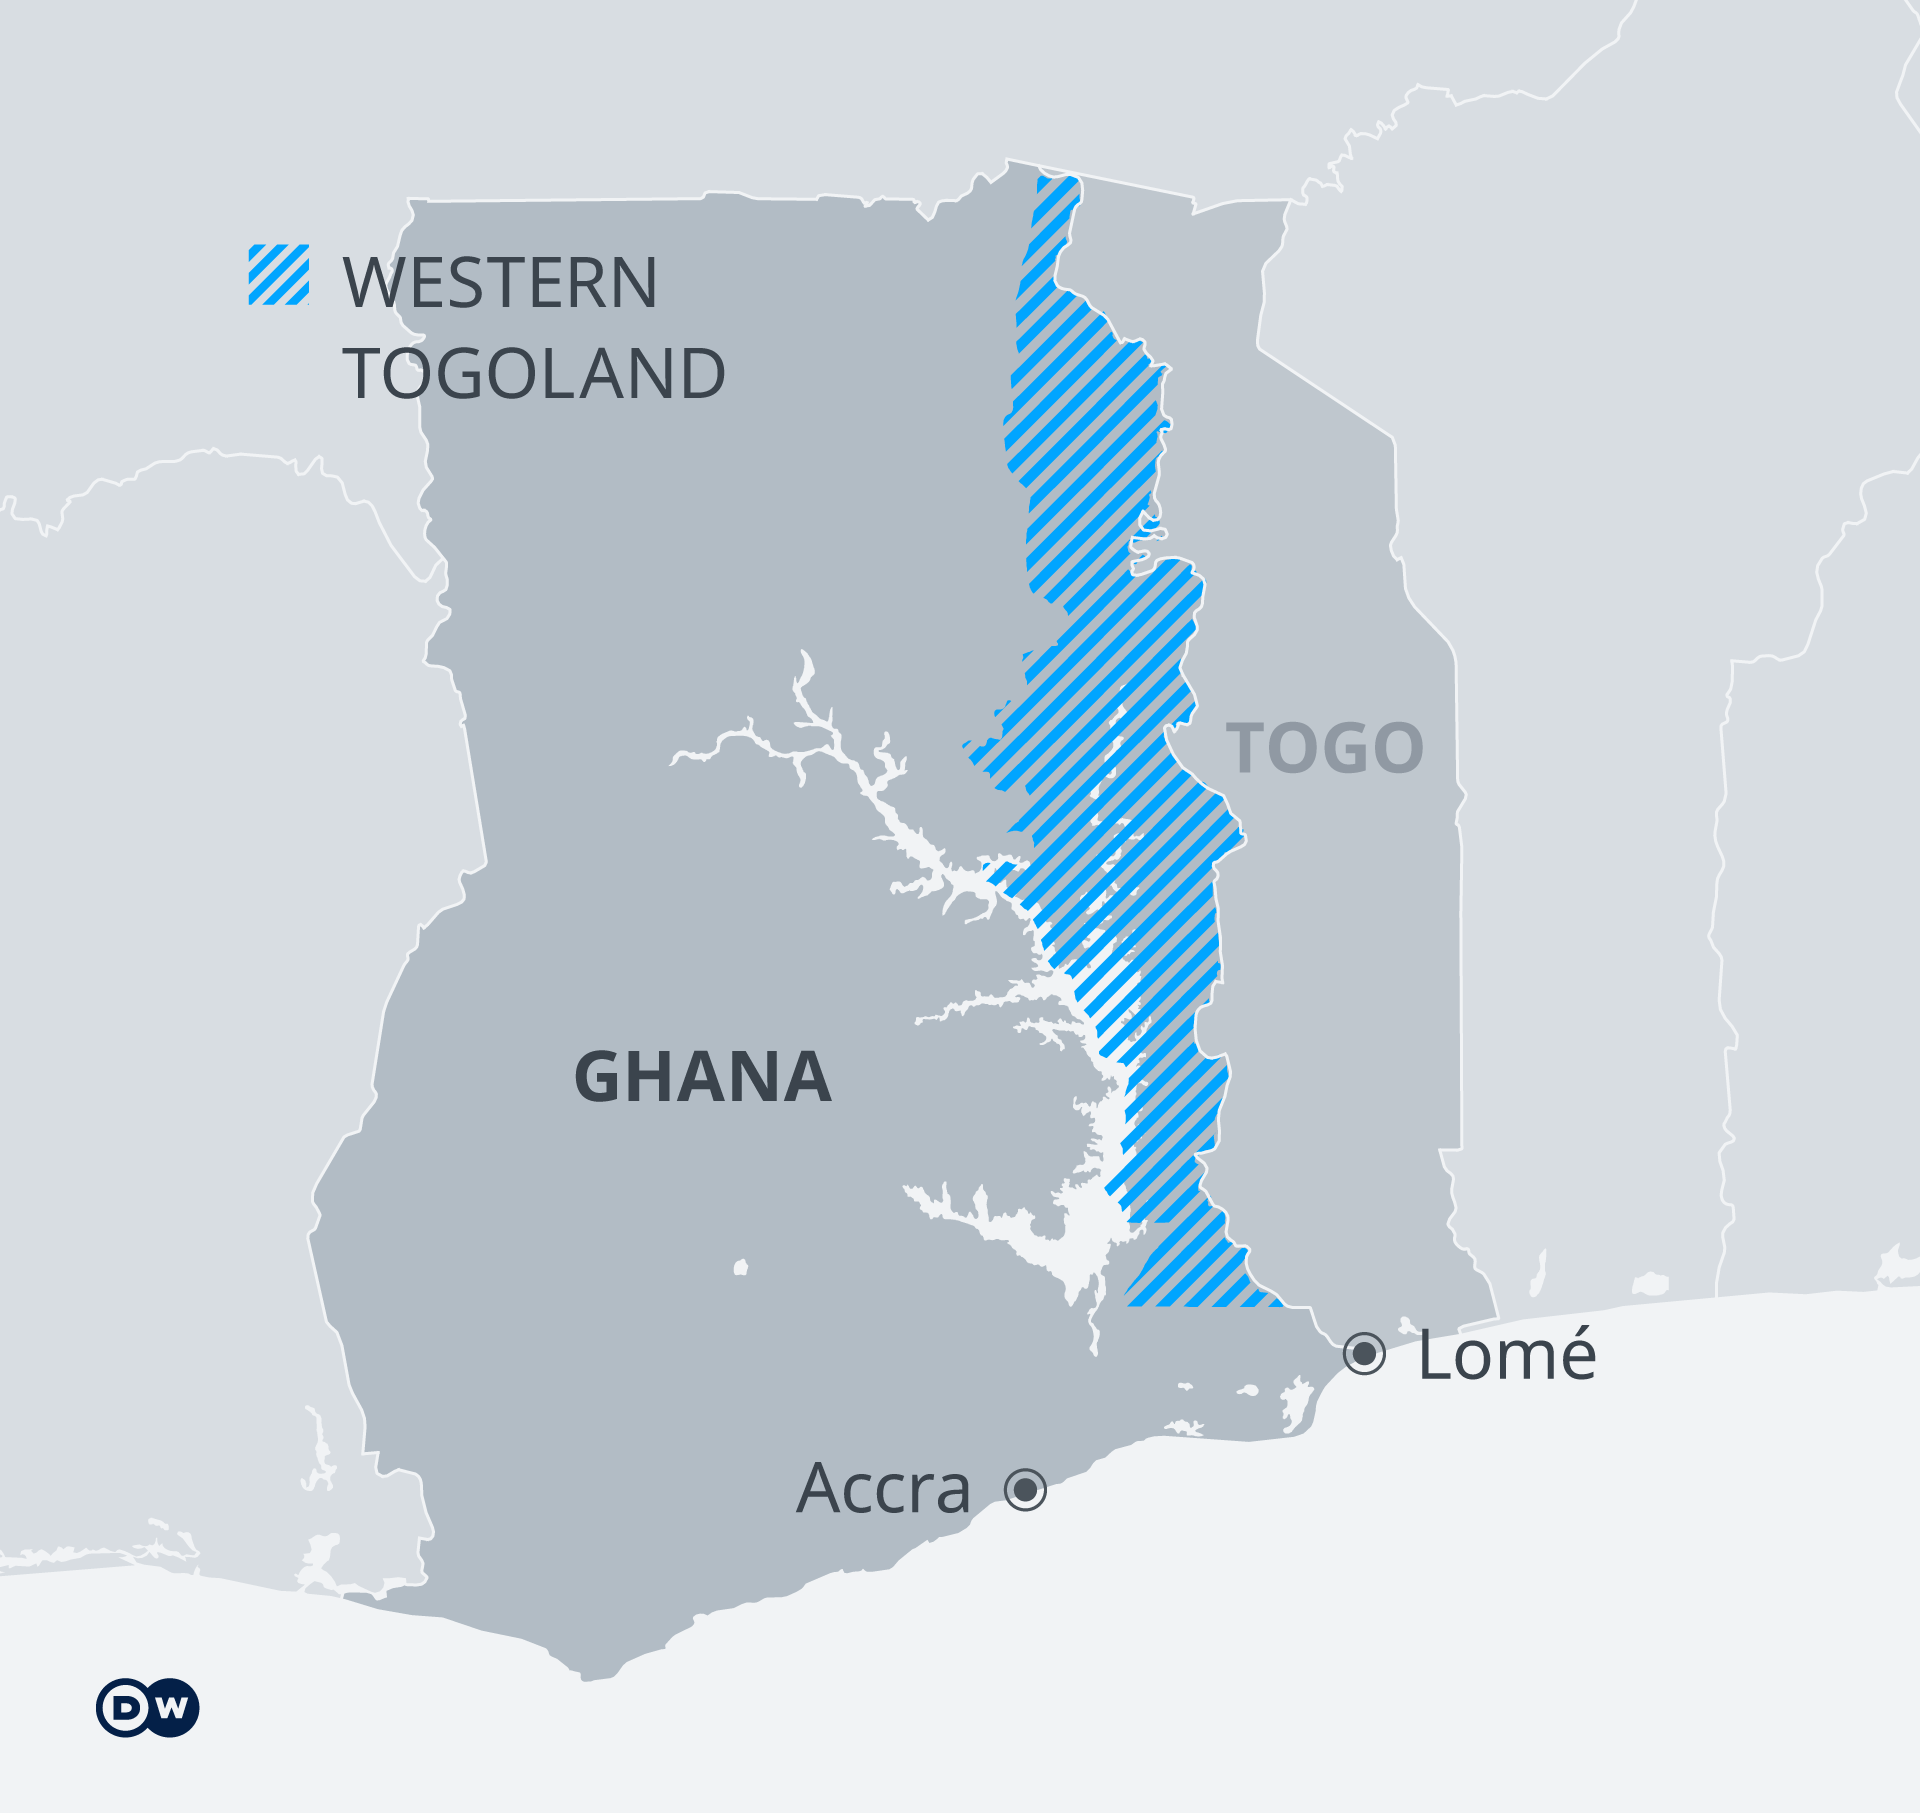 Map of the territory of Western Togoland